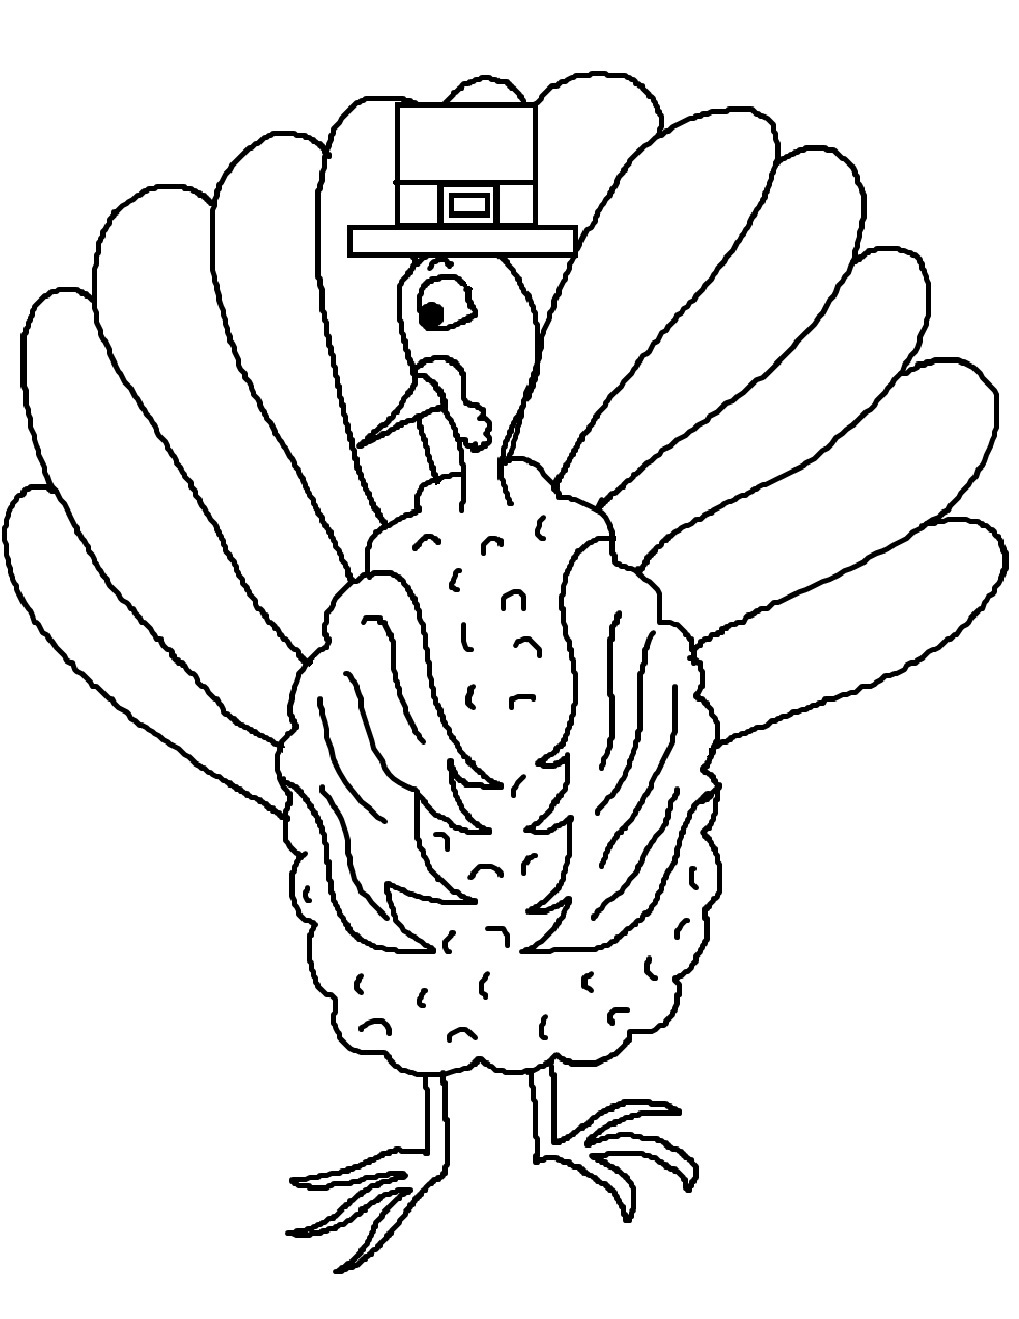 turkey wattle coloring pages - photo#28